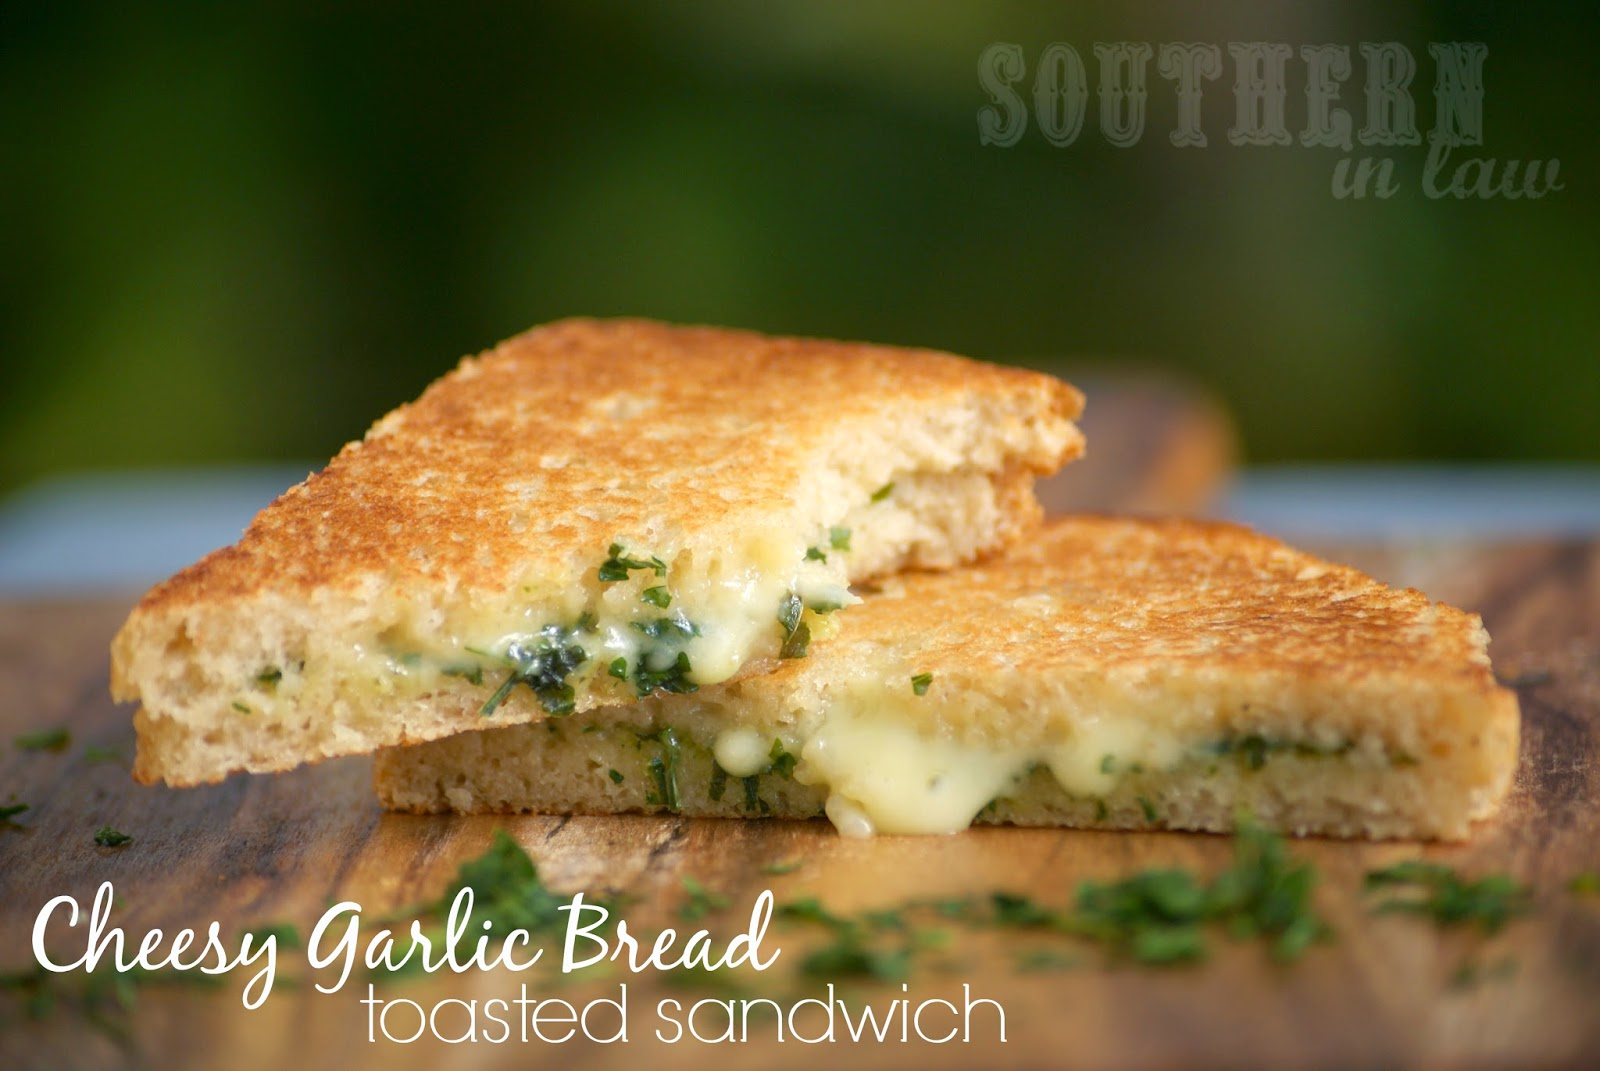 Cheesy Garlic Bread Panini Recipe - gluten free, low fat, vegan/dairy free option, clean eating friendly